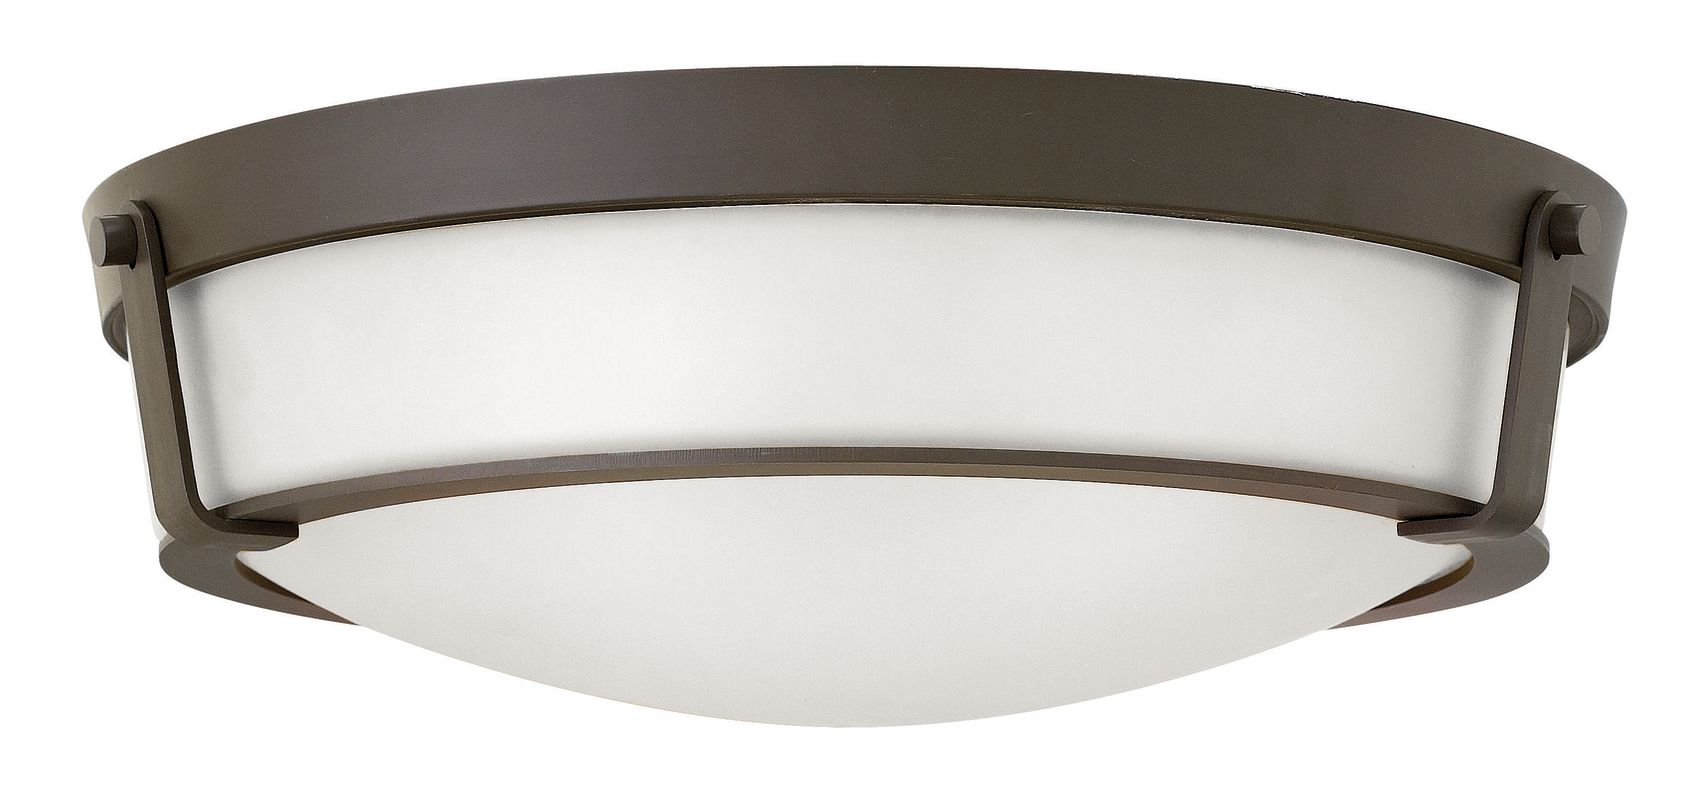 Hinkley Lighting 3226 4 Light Flush Mount Ceiling Fixture from the Sale $449.00 ITEM#: 2635218 MODEL# :3226OB-WH UPC#: 640665322682 :